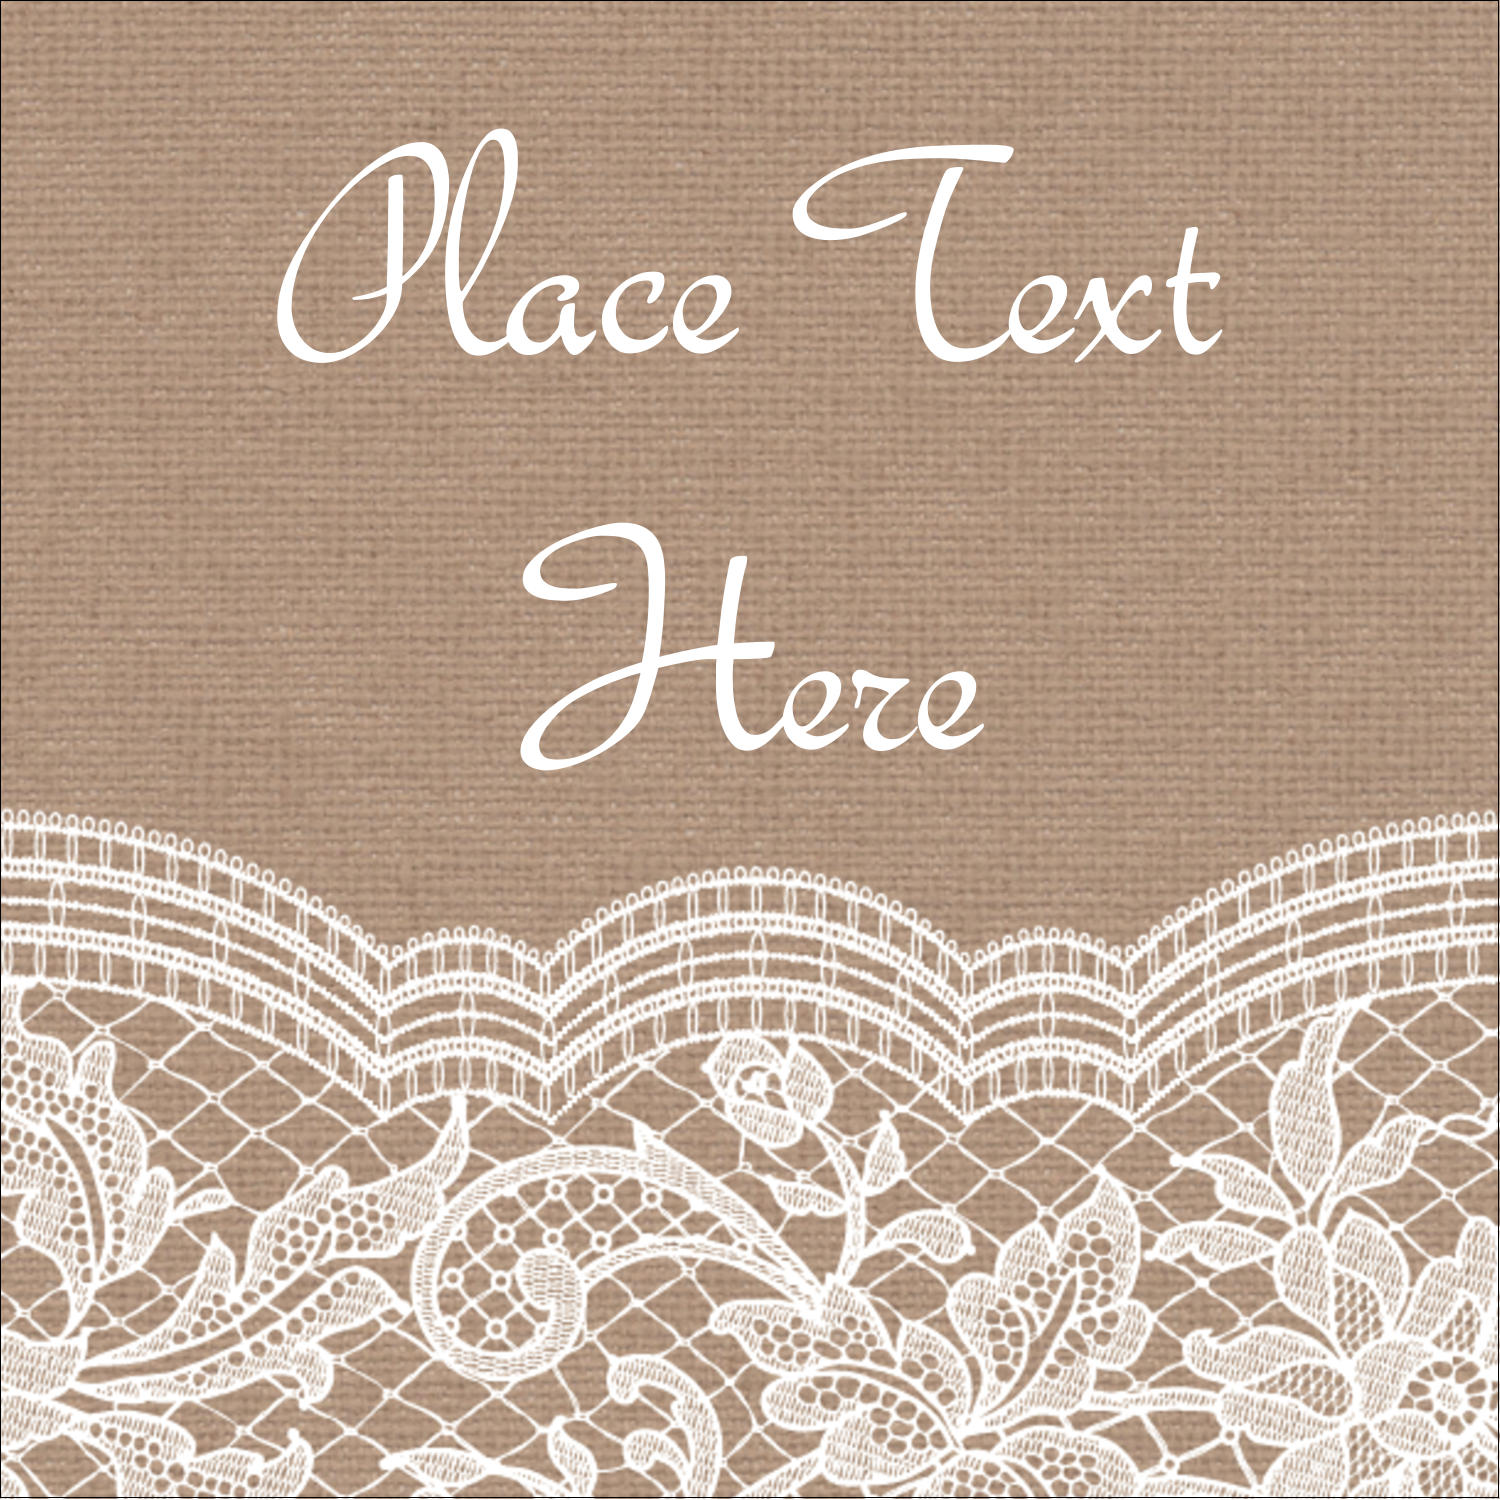 "2"" x 2"" Sqaure Label - Burlap Lace"